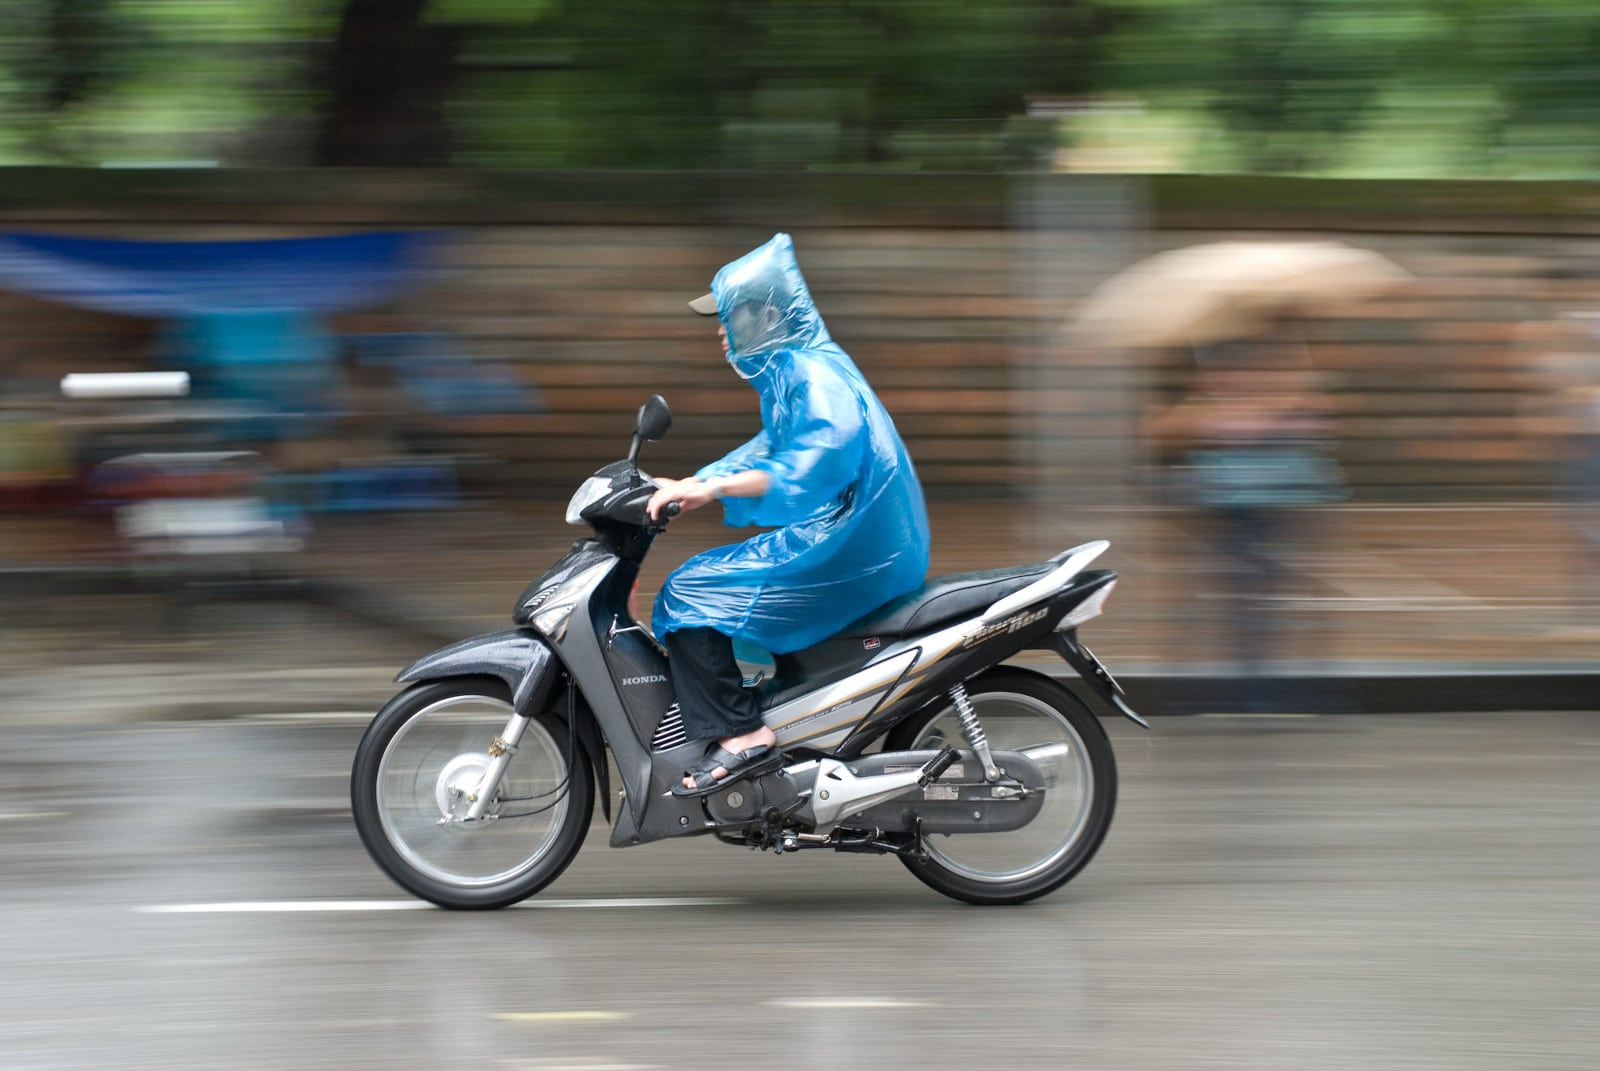 Image of a person on a motorbike in Vietnam wearing a rain pancho